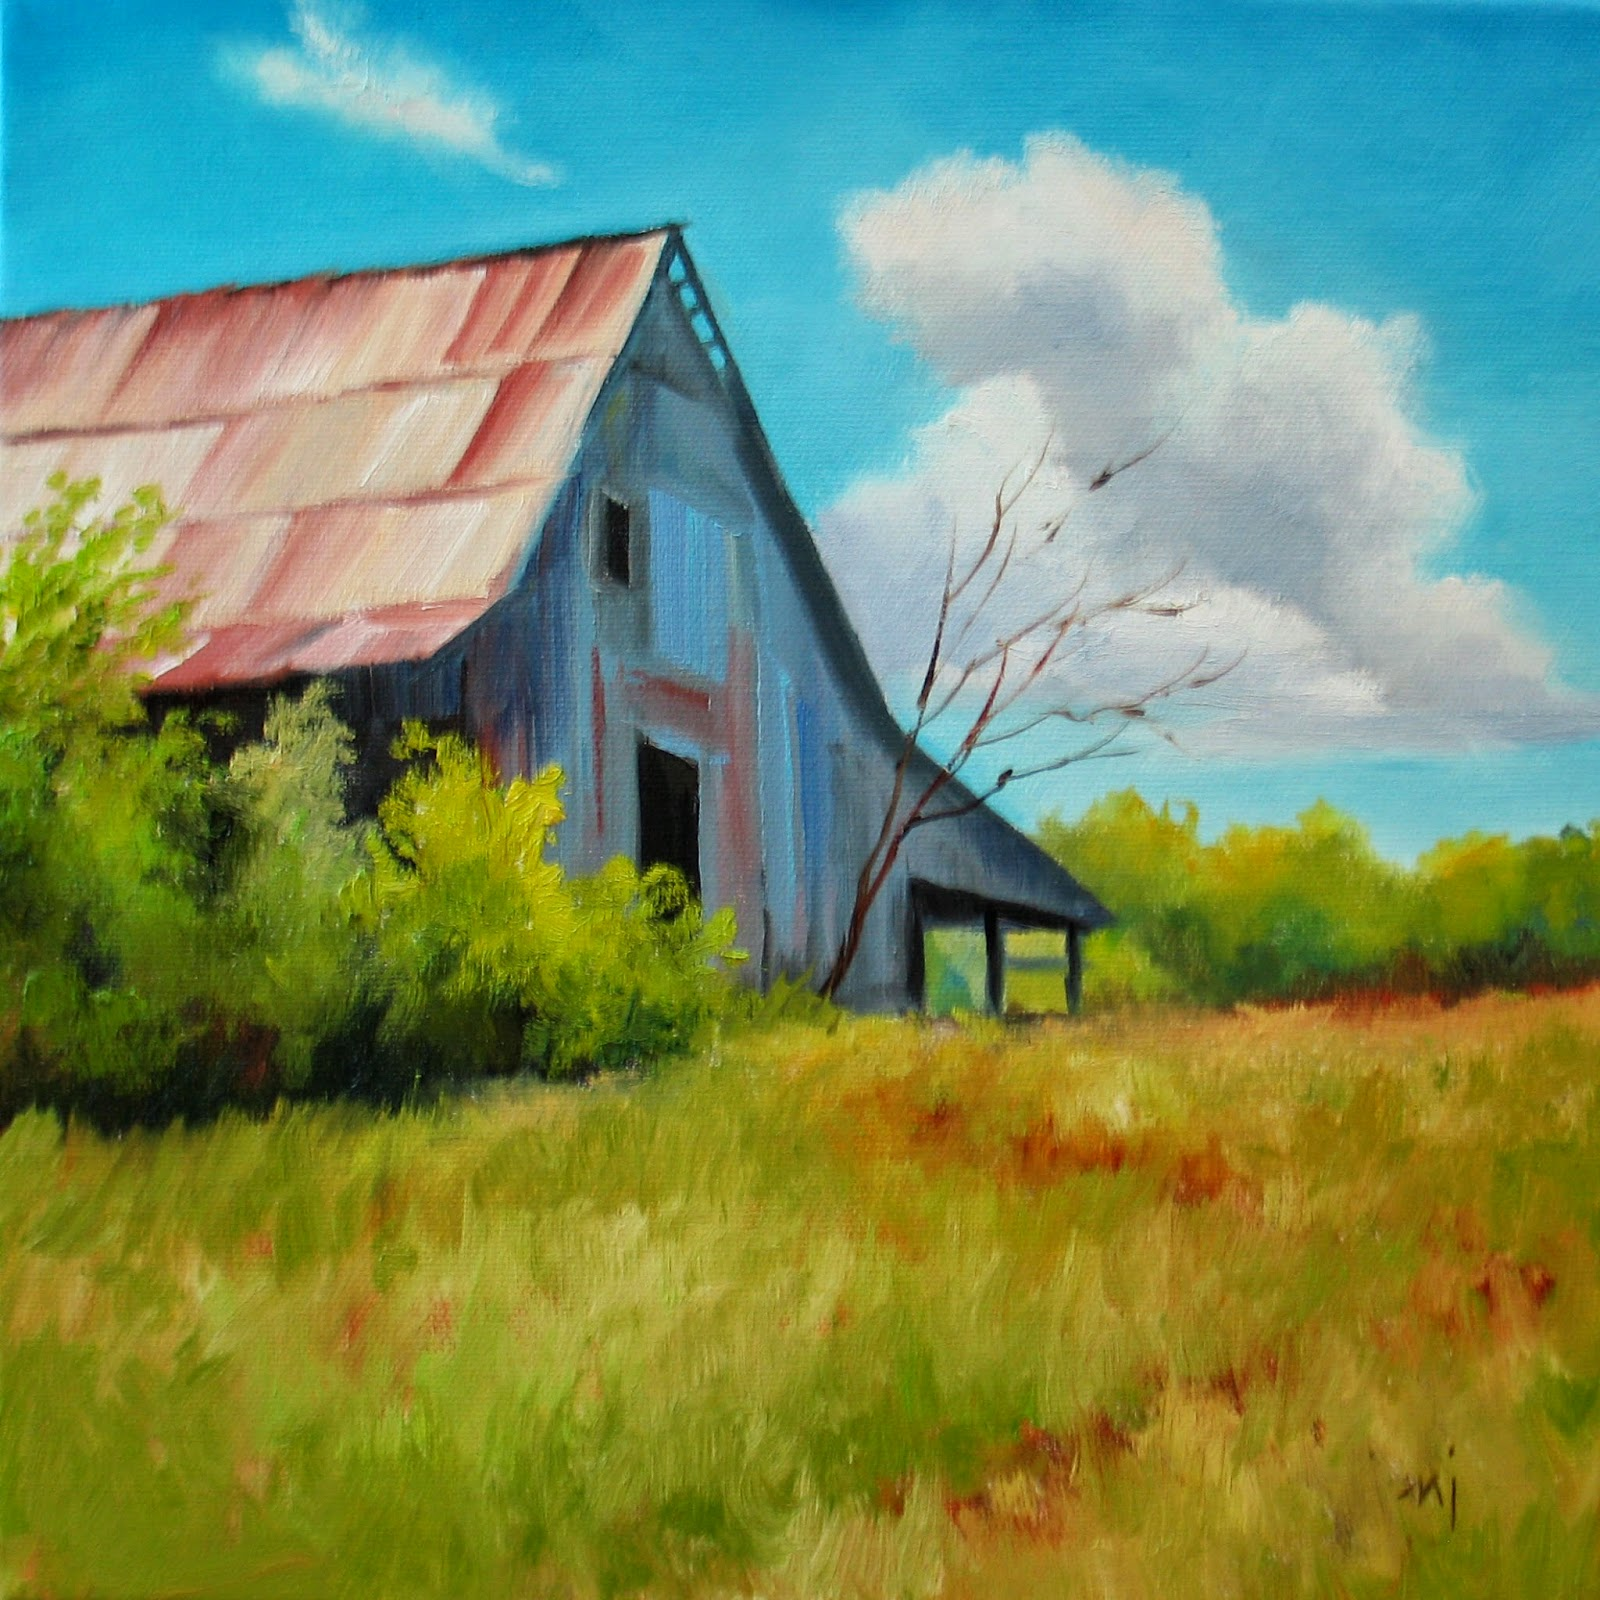 Nel 39 s everyday painting 5 4 14 5 11 14 for Watercolor barn paintings